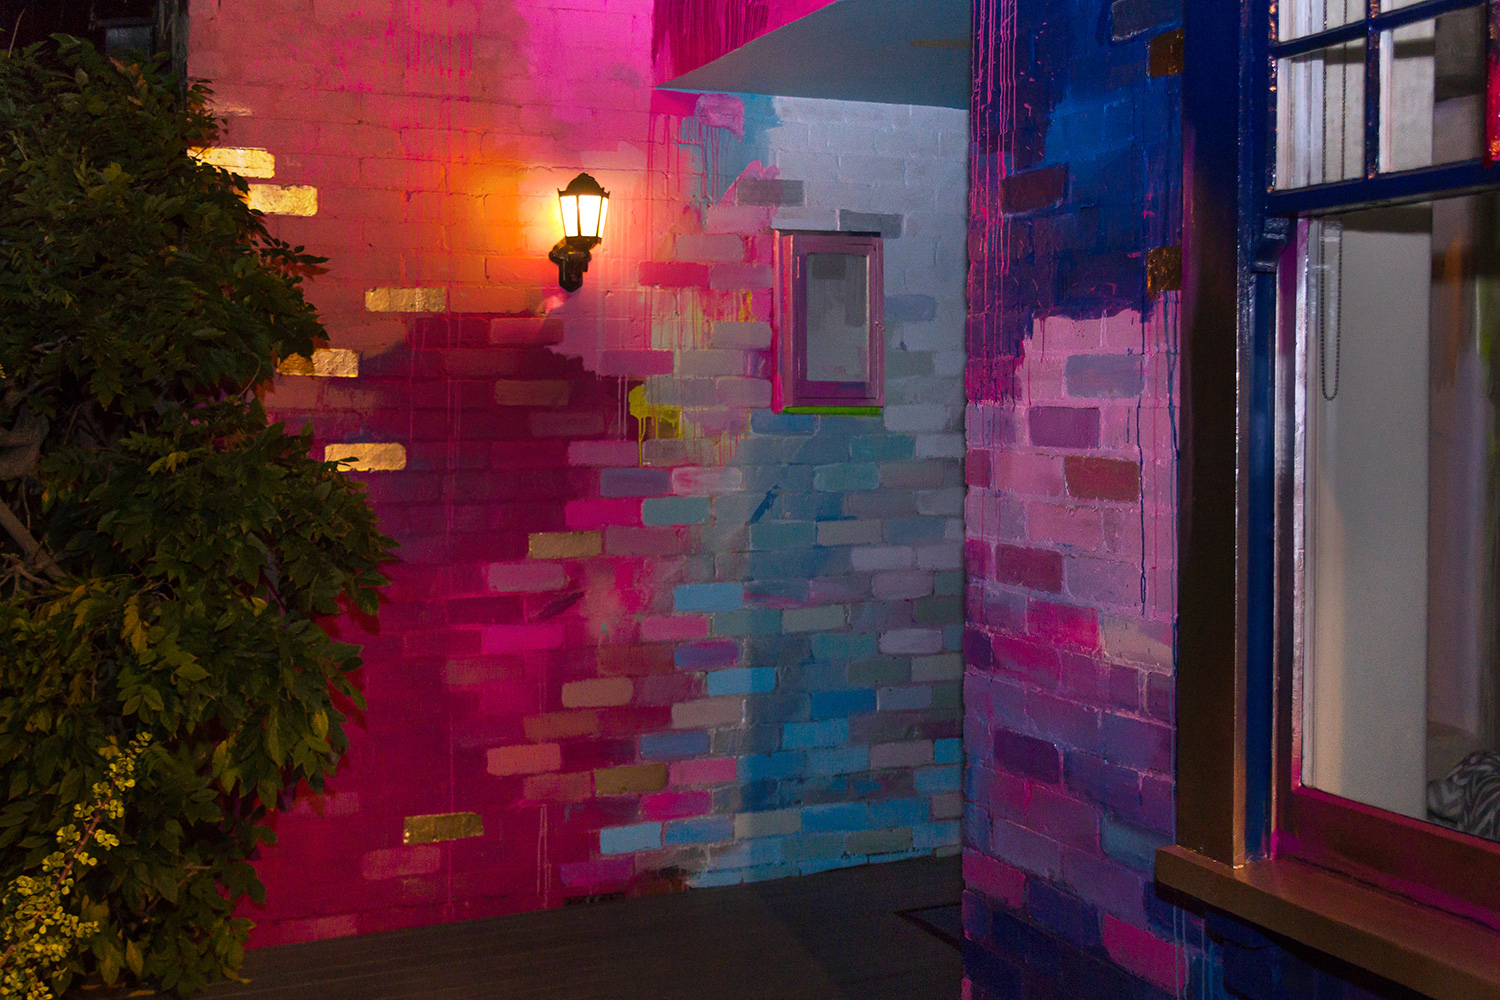 Night time glimpse at large abstract mural painted on the exterior of a house, the wall lamp lights up the metallic colored bricks.